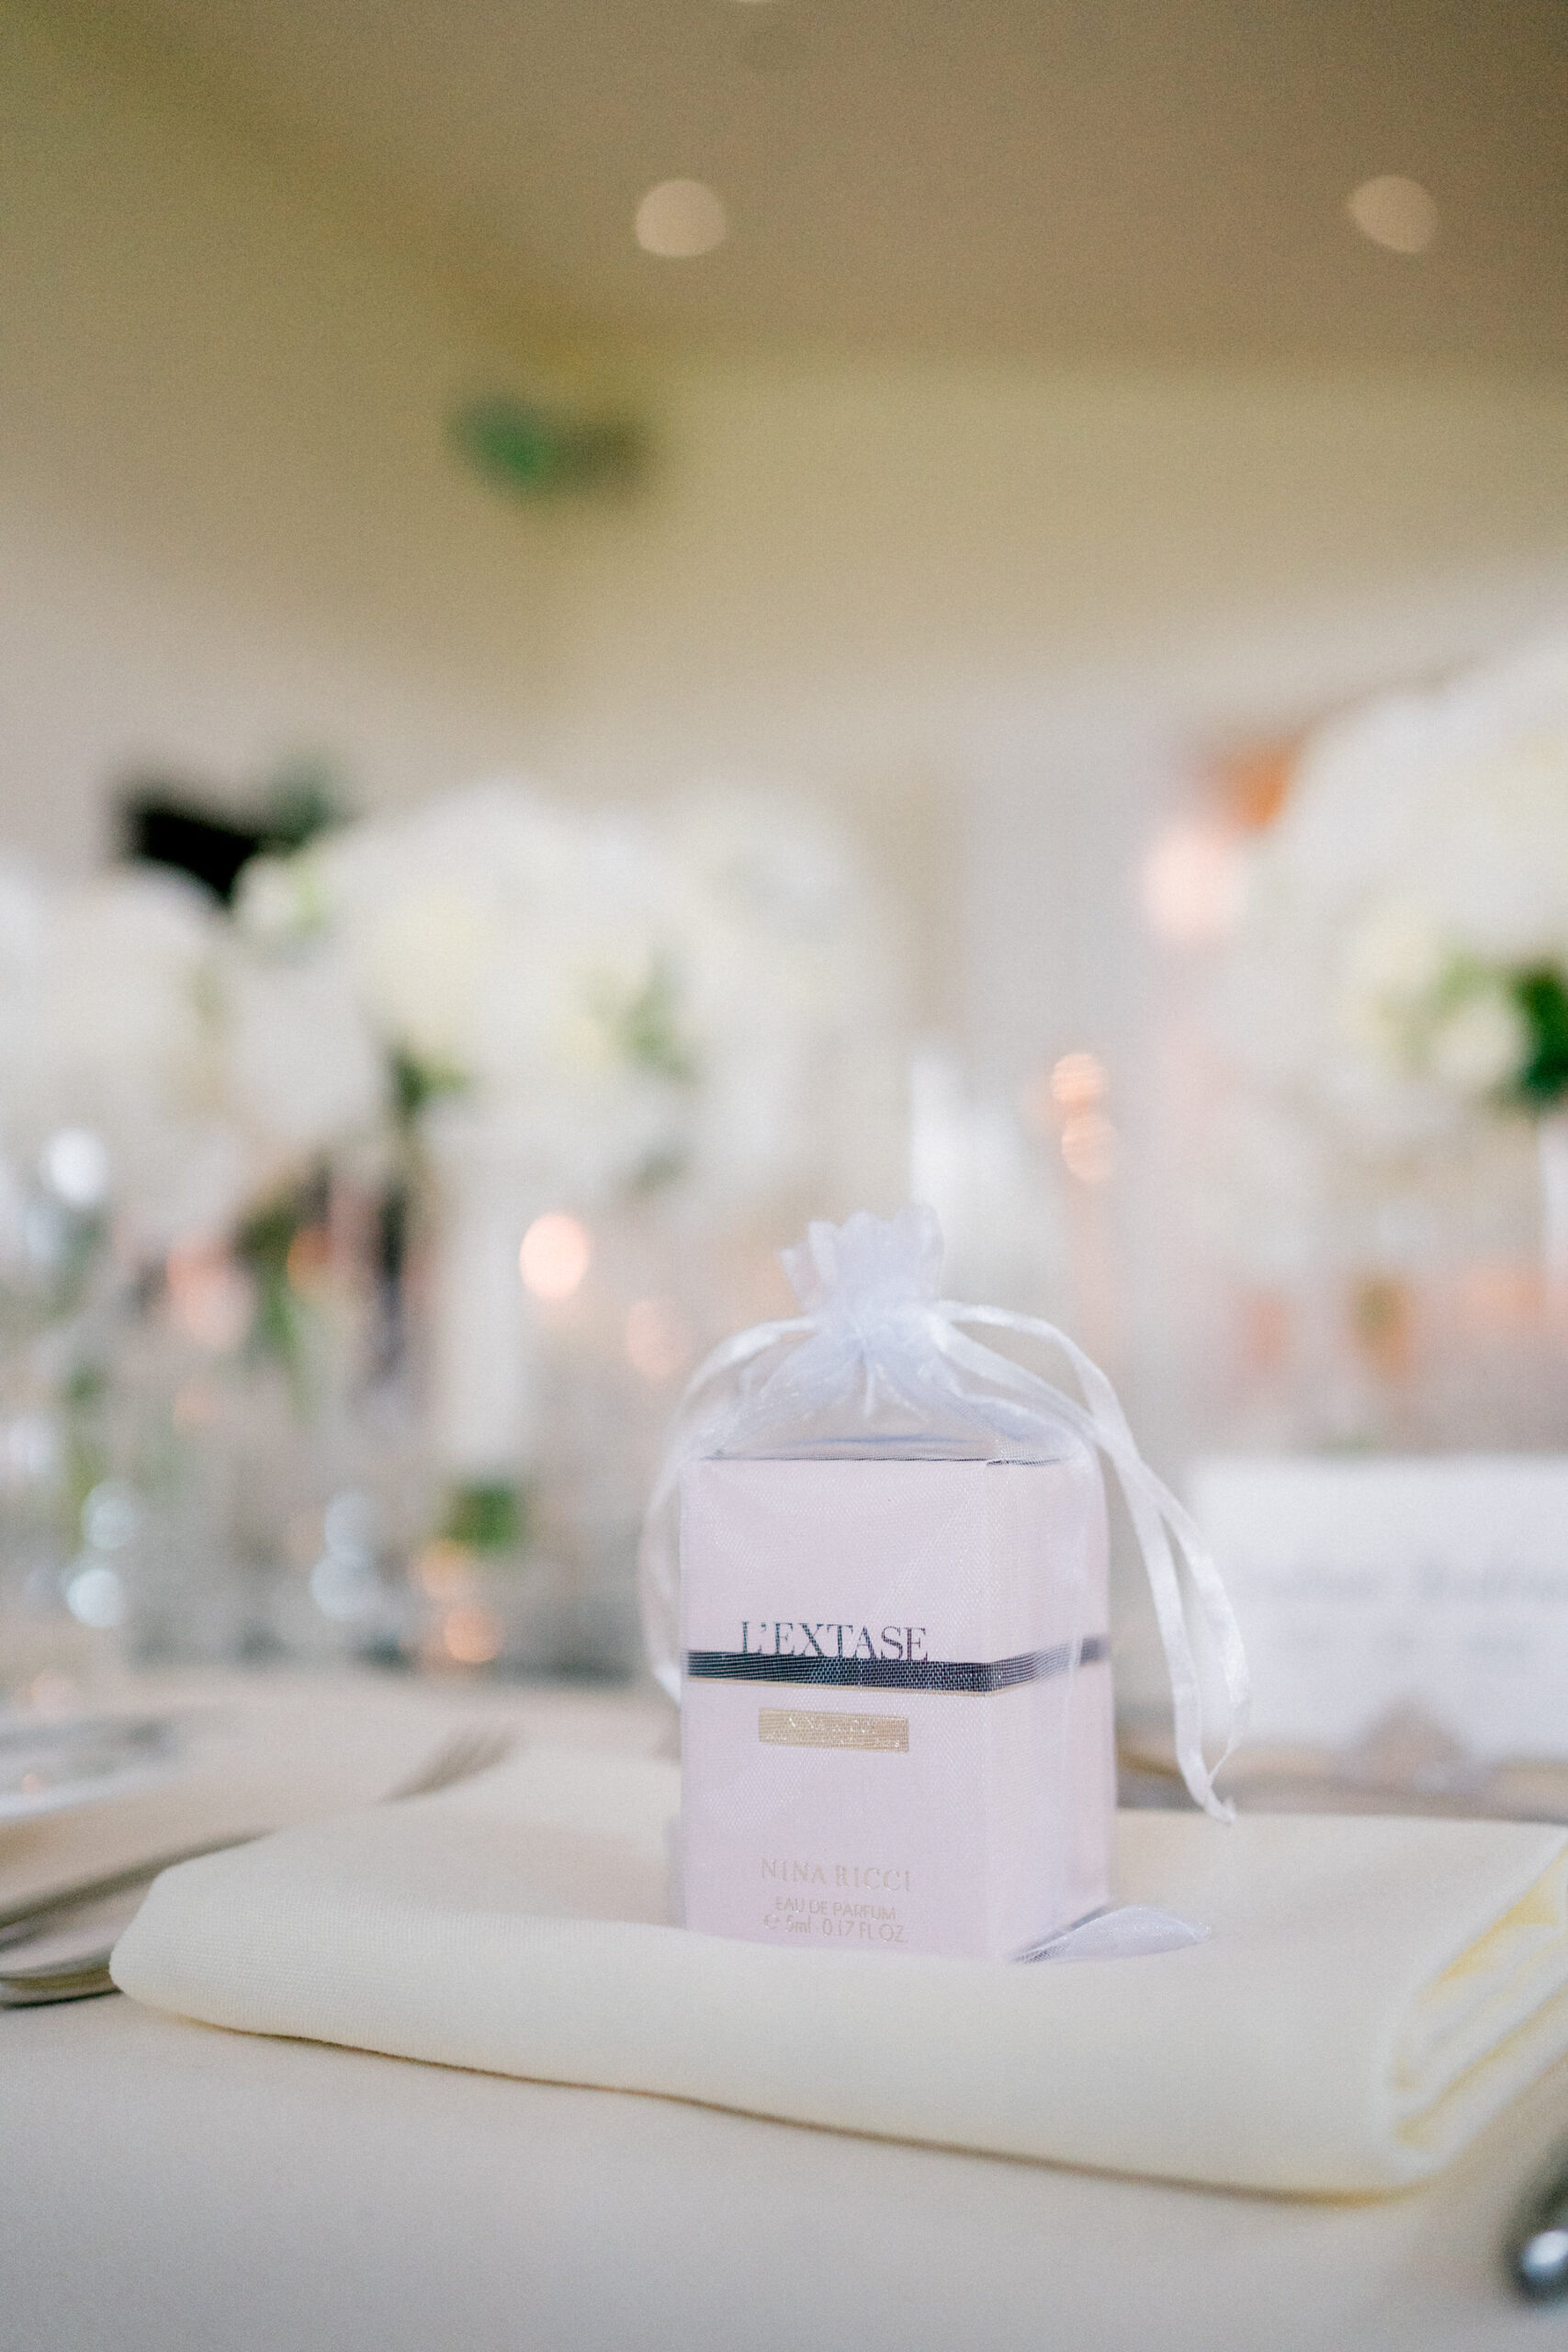 perfume gift for wedding guests